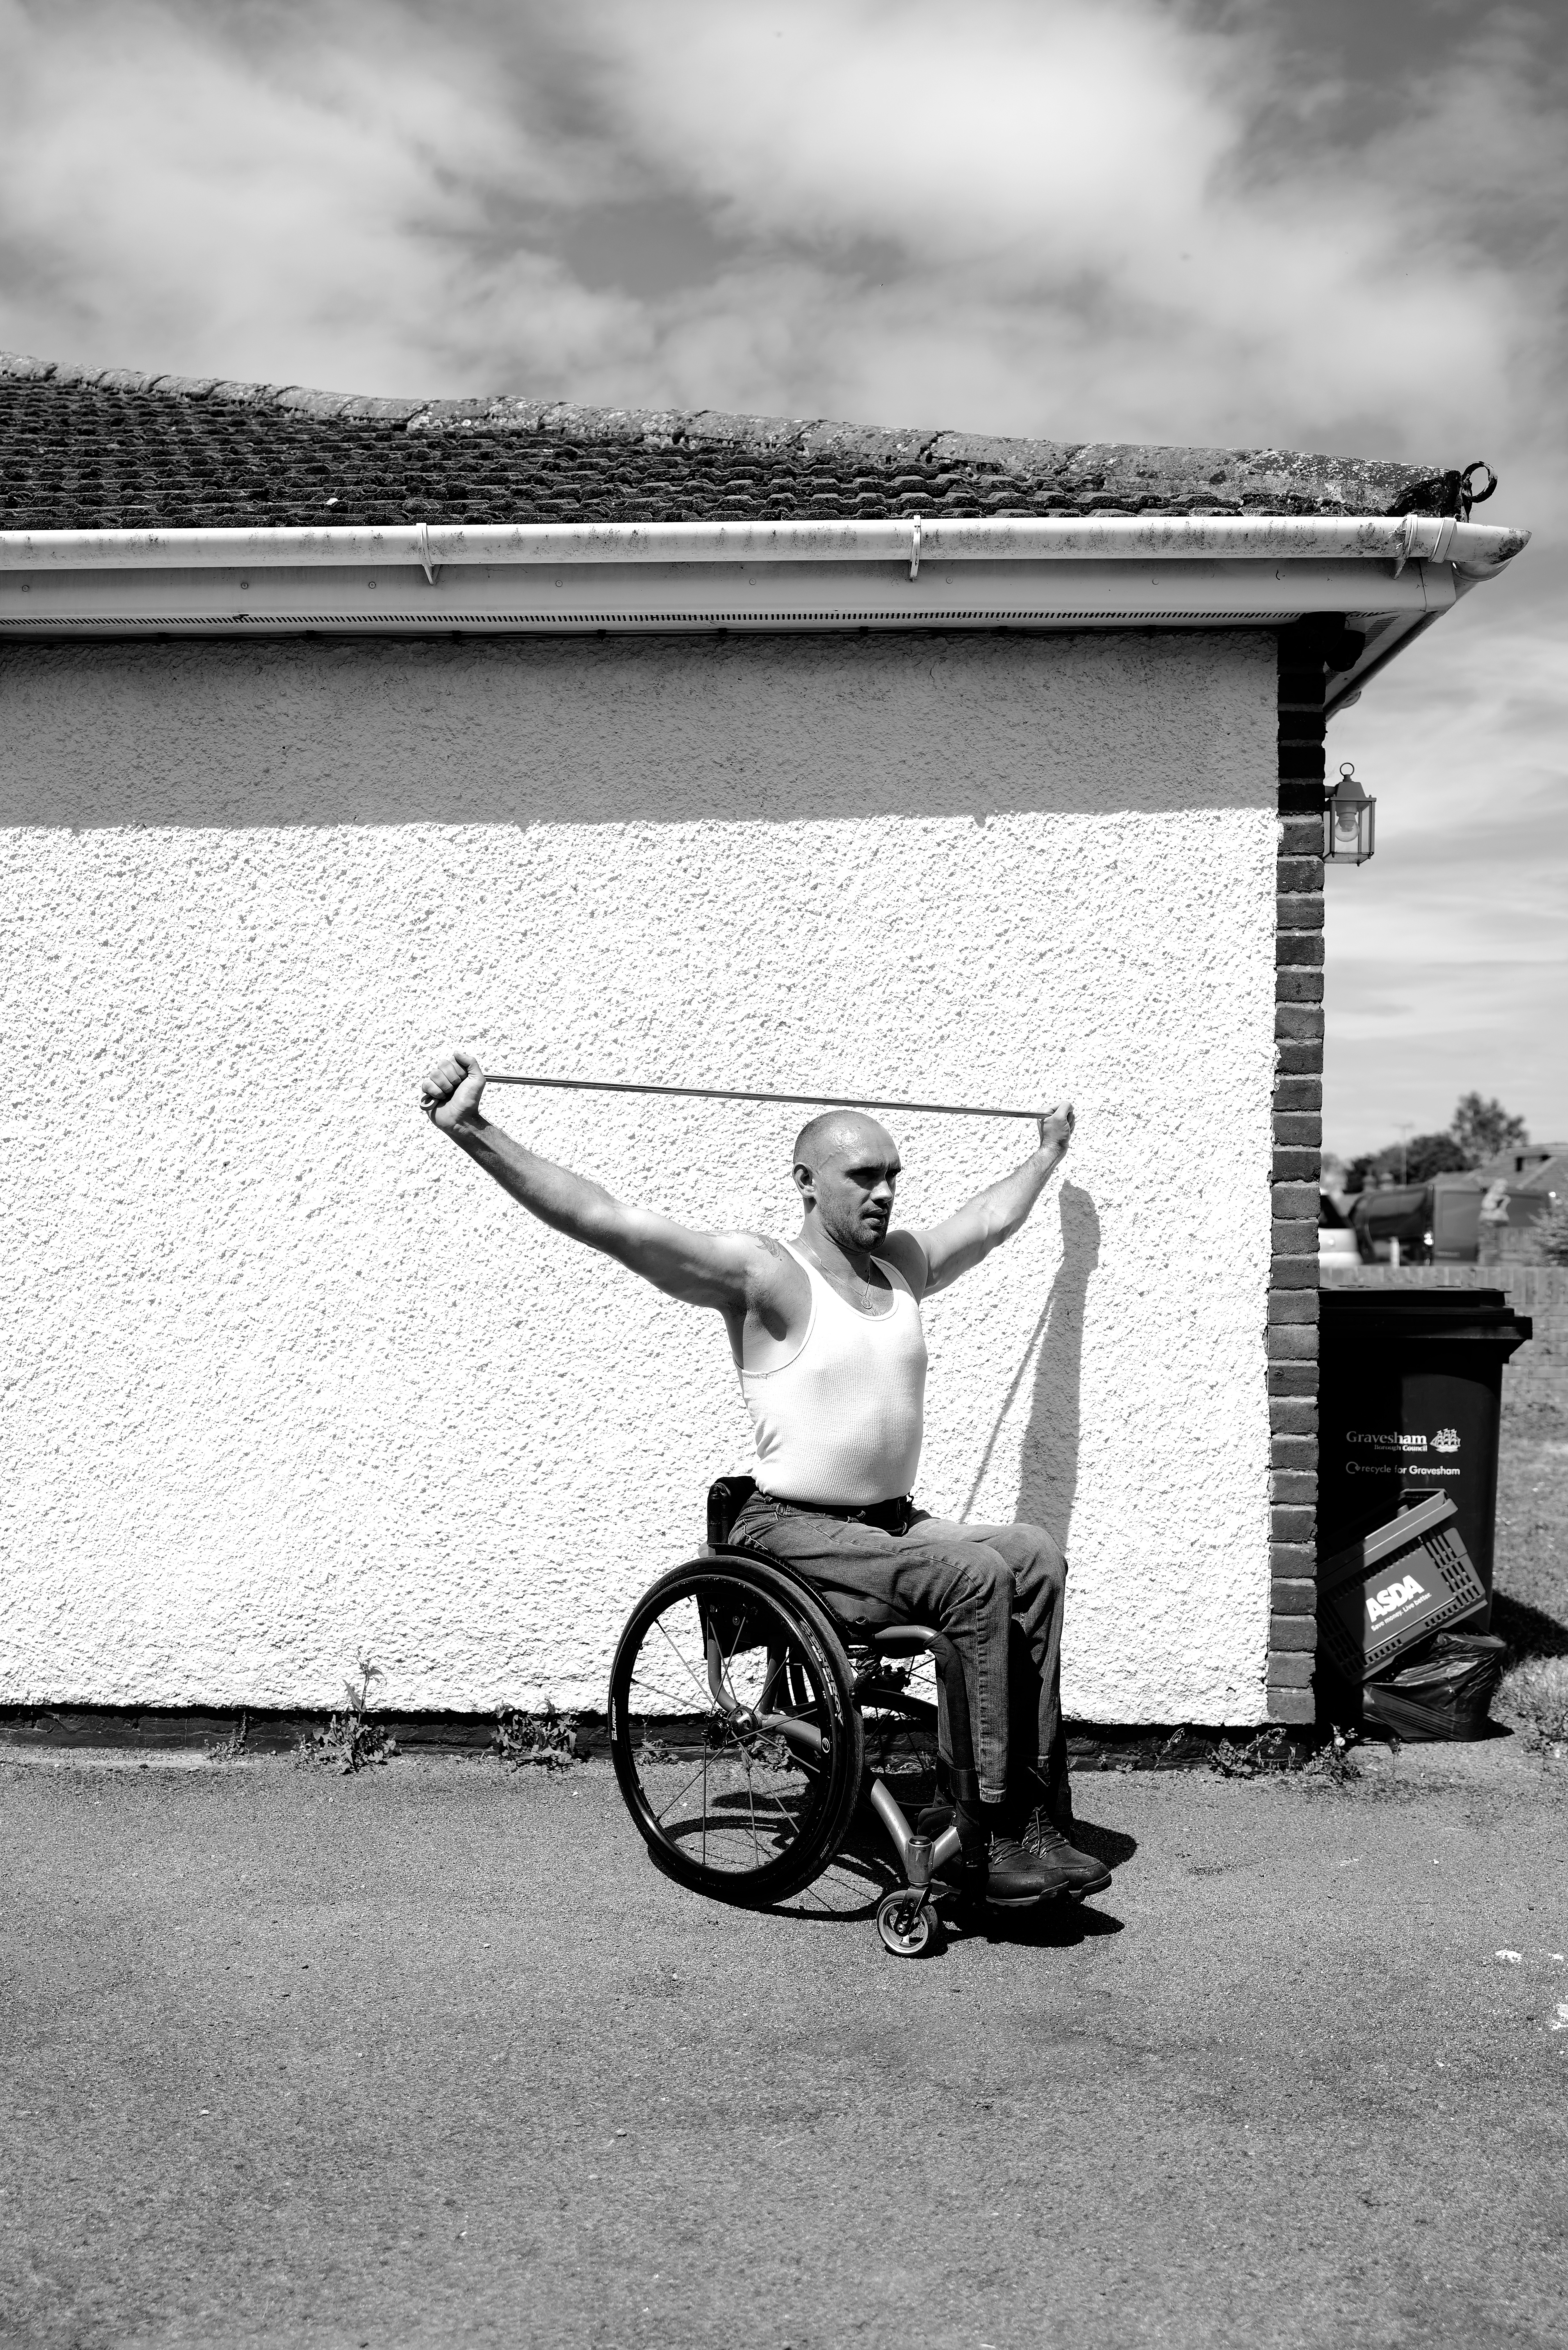 WEST KINGSDOWN, ENGLAND - MAY 26: (EDITORS NOTE: Image has been shot in black and white. Color version not available.) GB Paralympian Johnboy Smith trains at home during the Coronavirus Pandemic on May 26, 2020 in West Kingsdown, England. (Photo by Julian Finney/Getty Images)